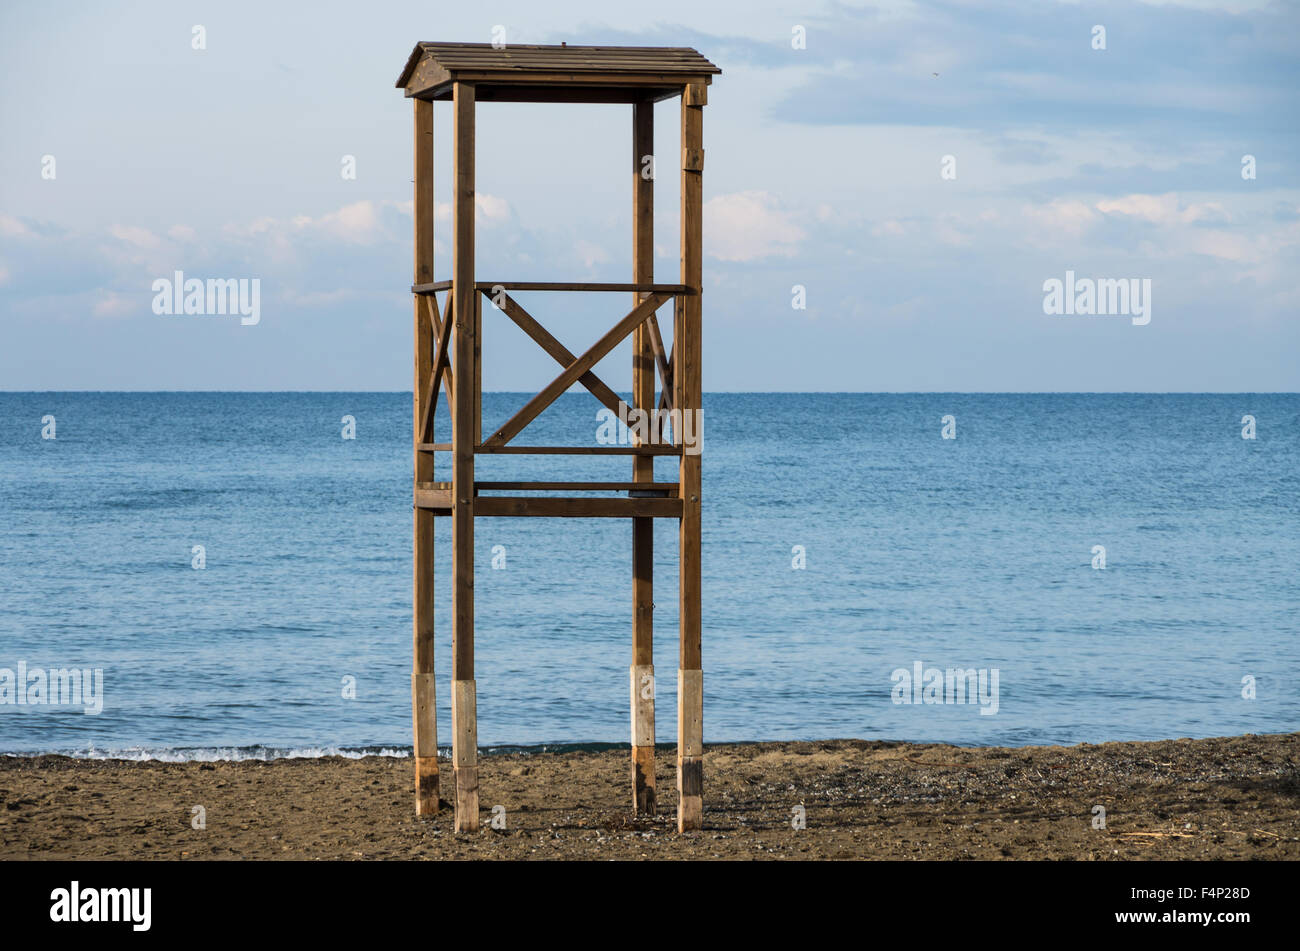 Solitary lifeguard tower during winter on the tuscany coast - Stock Image